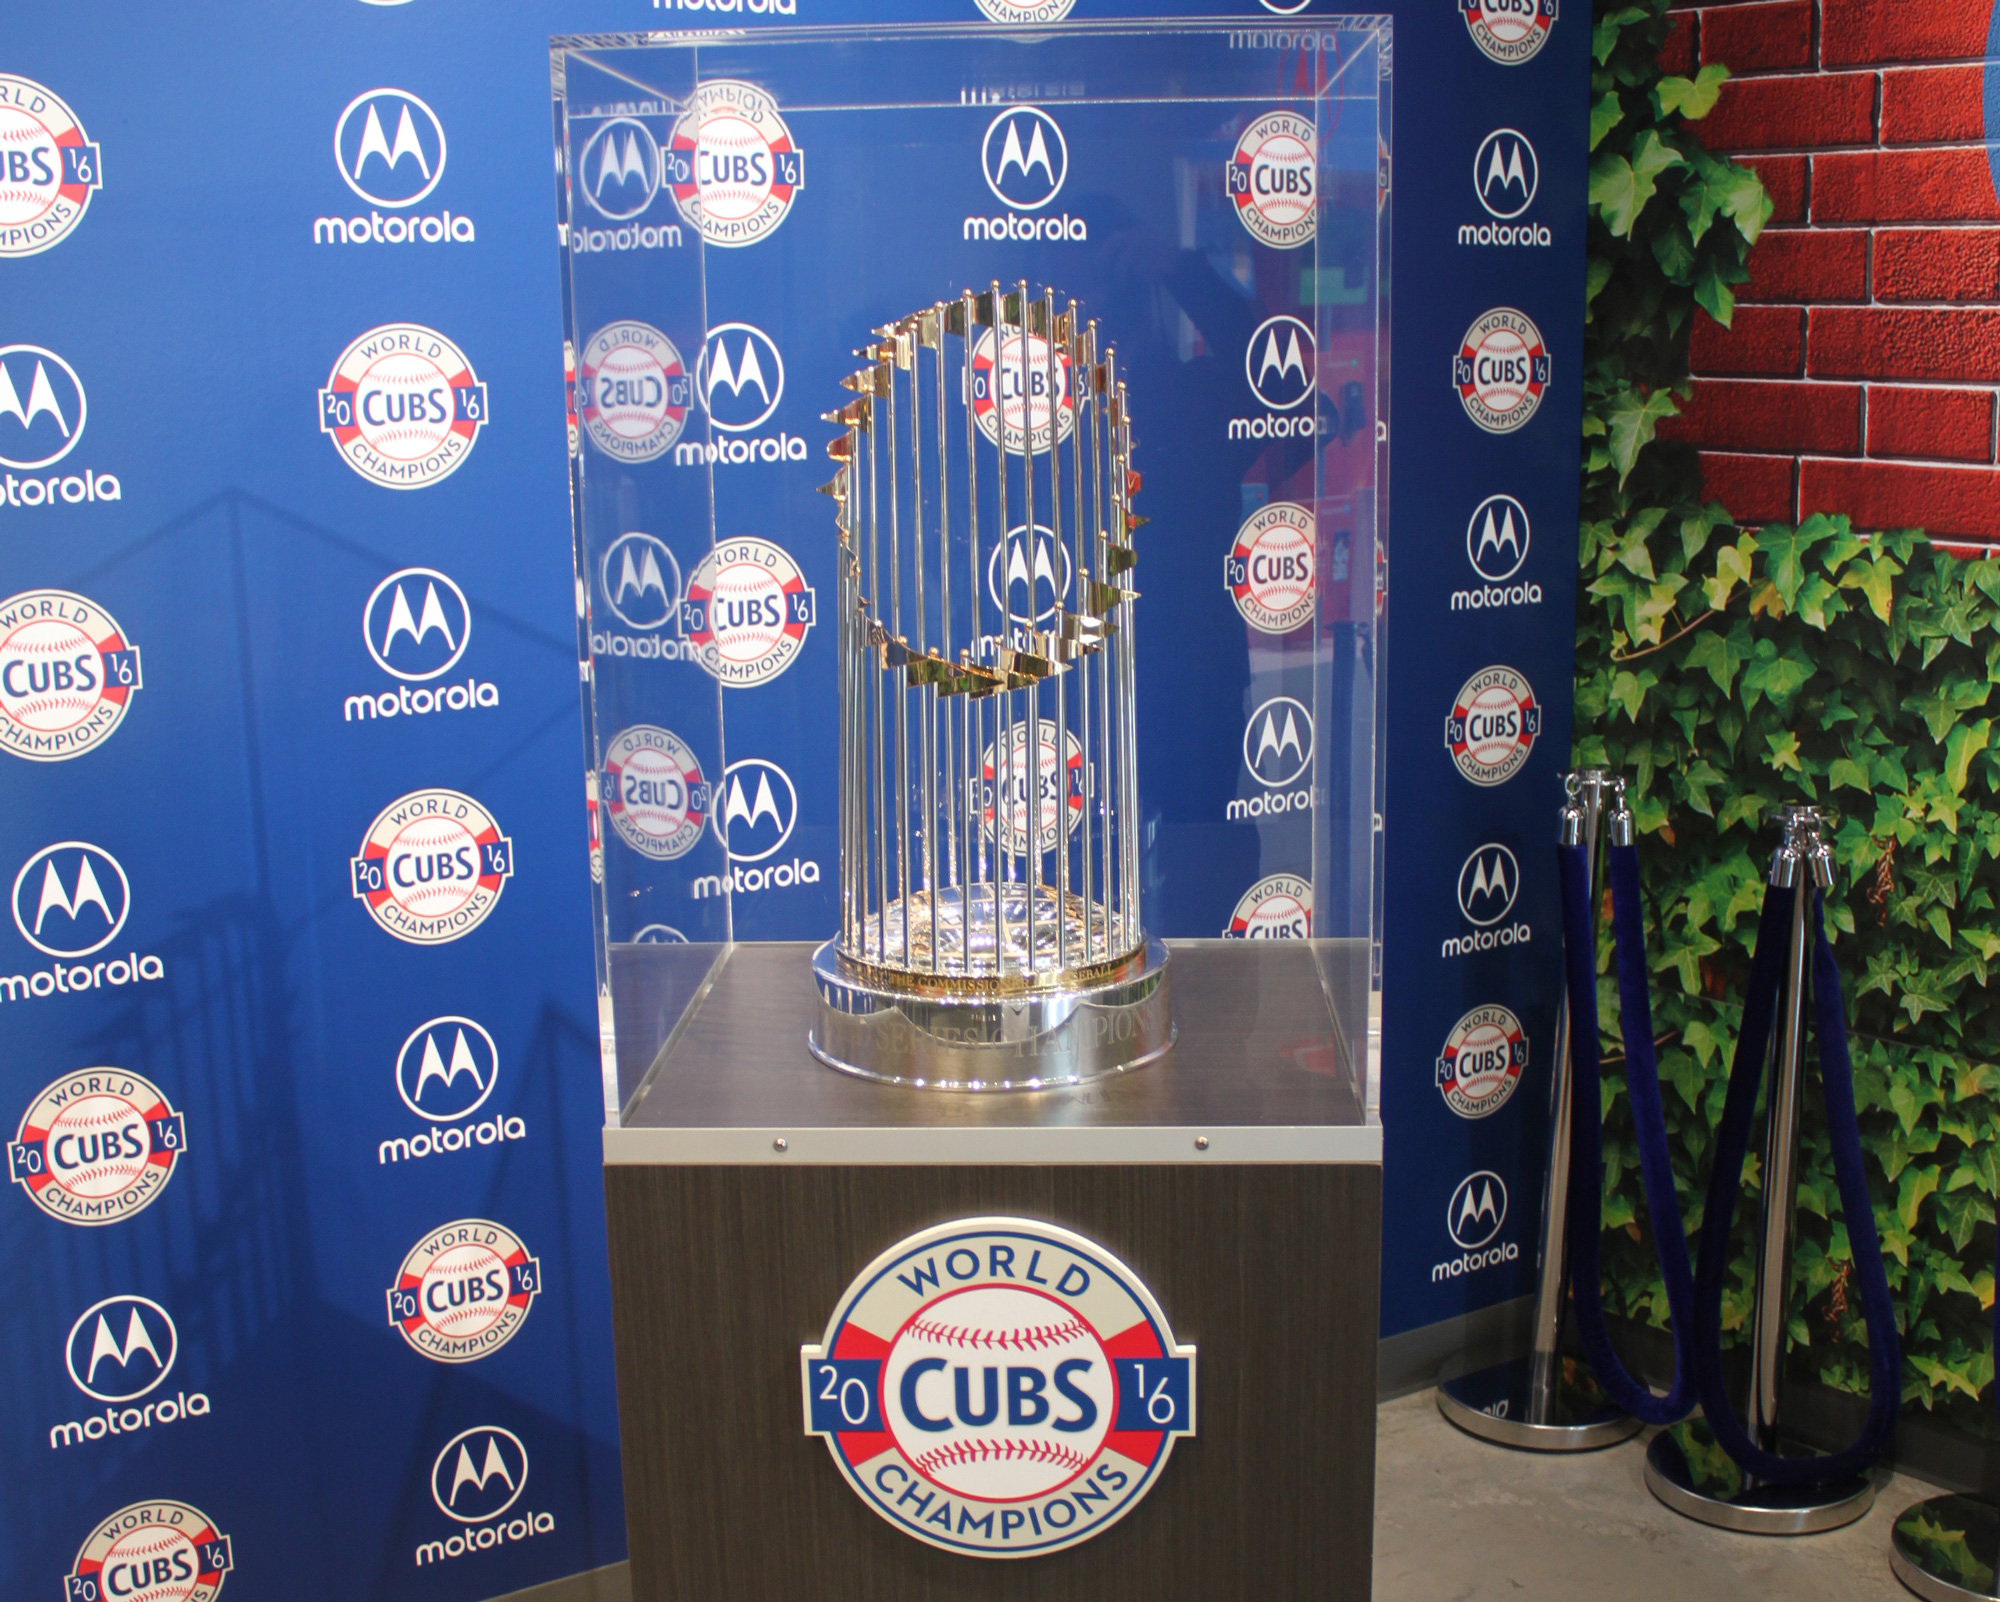 8 New Ways To Play Around Wrigley Field Midwest Living